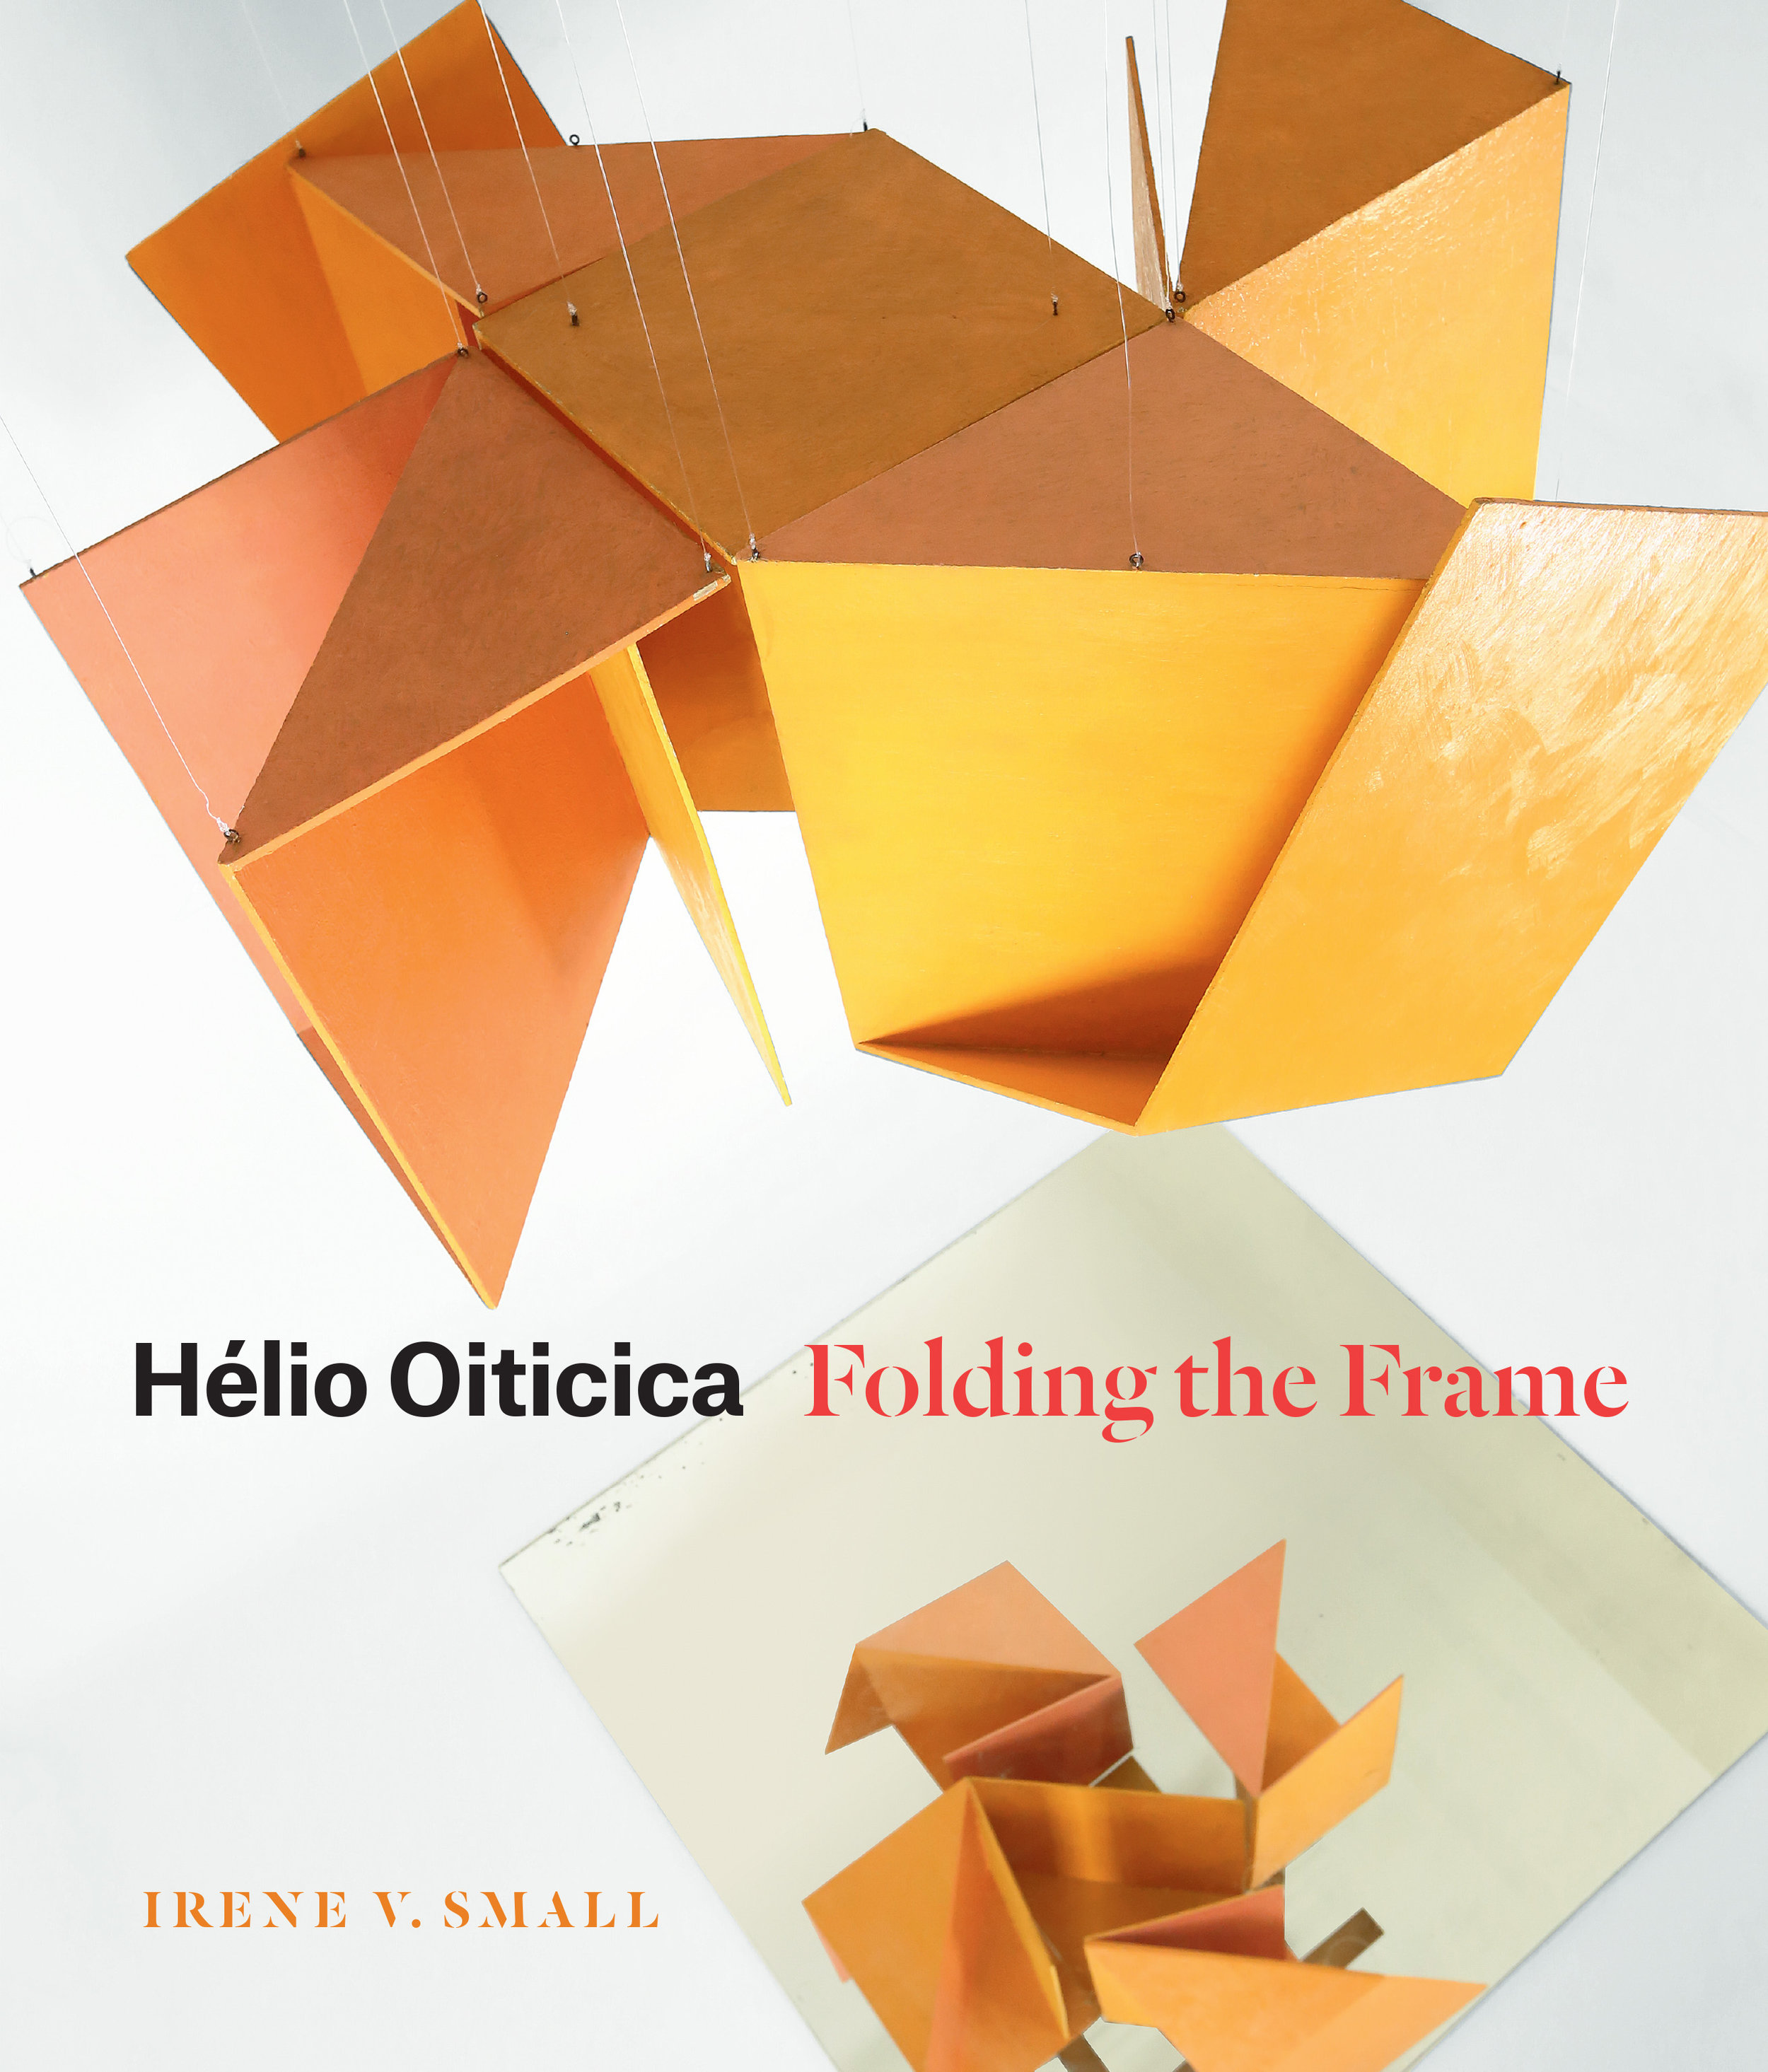 HO Folding frame book cover.jpg